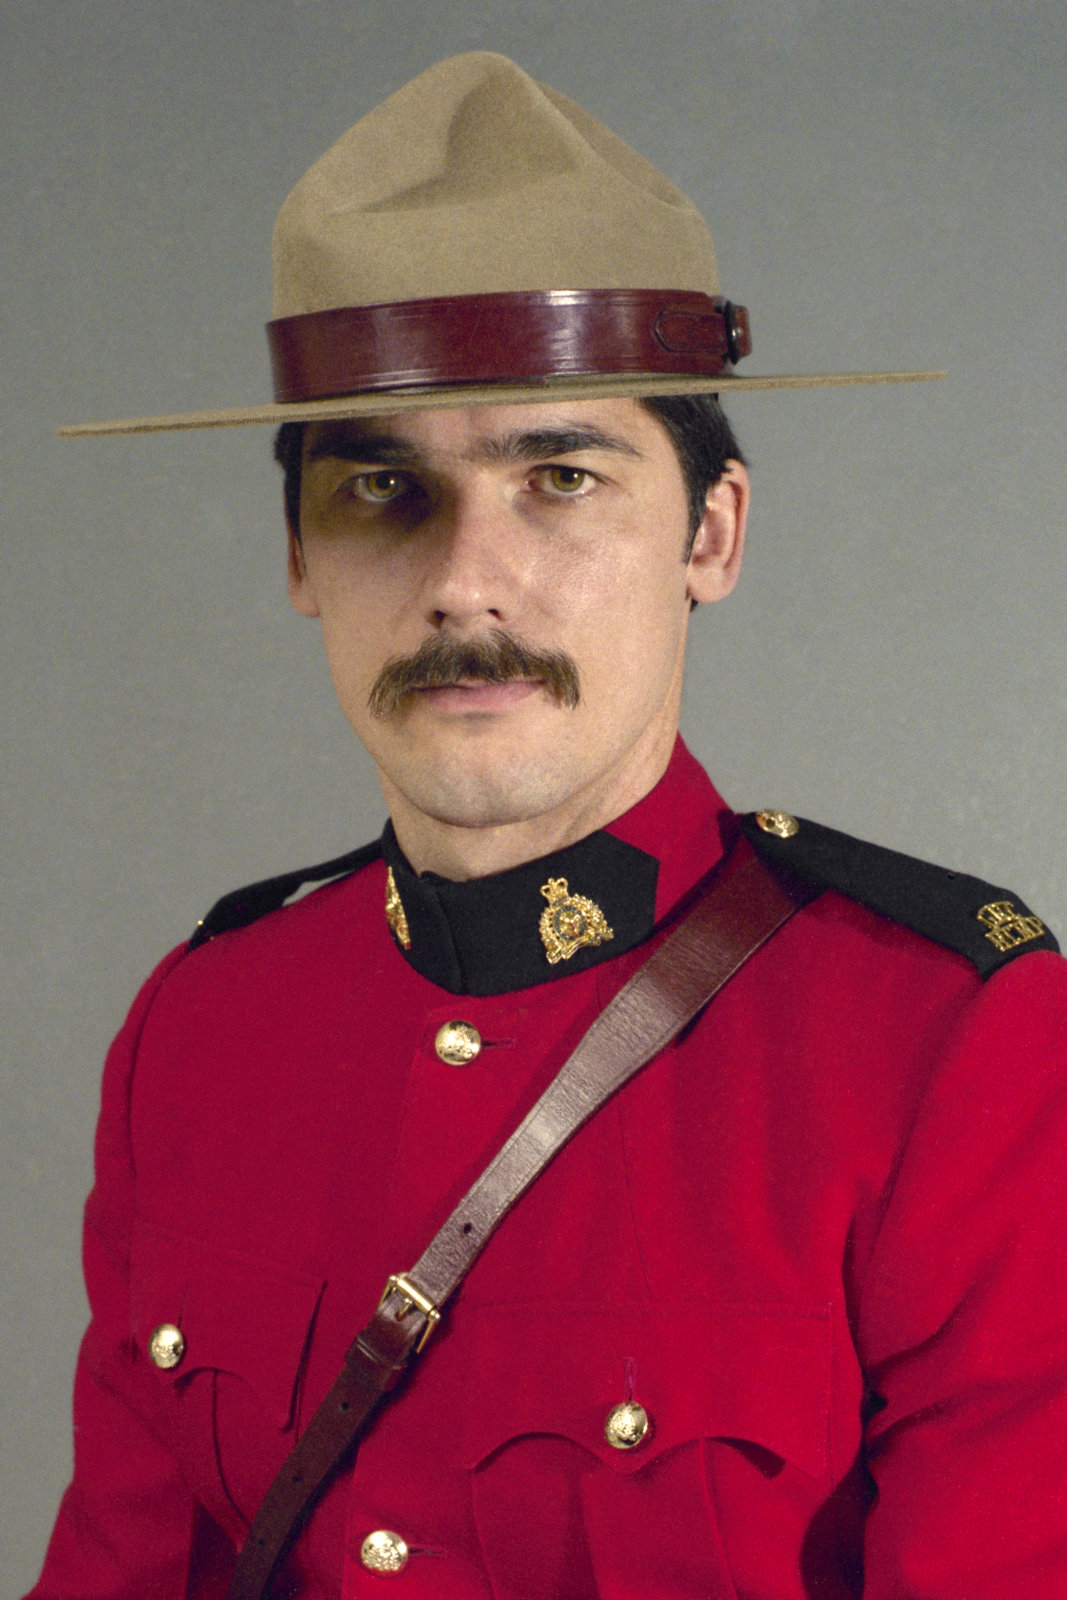 Corporal Derek John Flanagan – © Her Majesty the Queen in Right of Canada as represented by the Royal Canadian Mounted Police